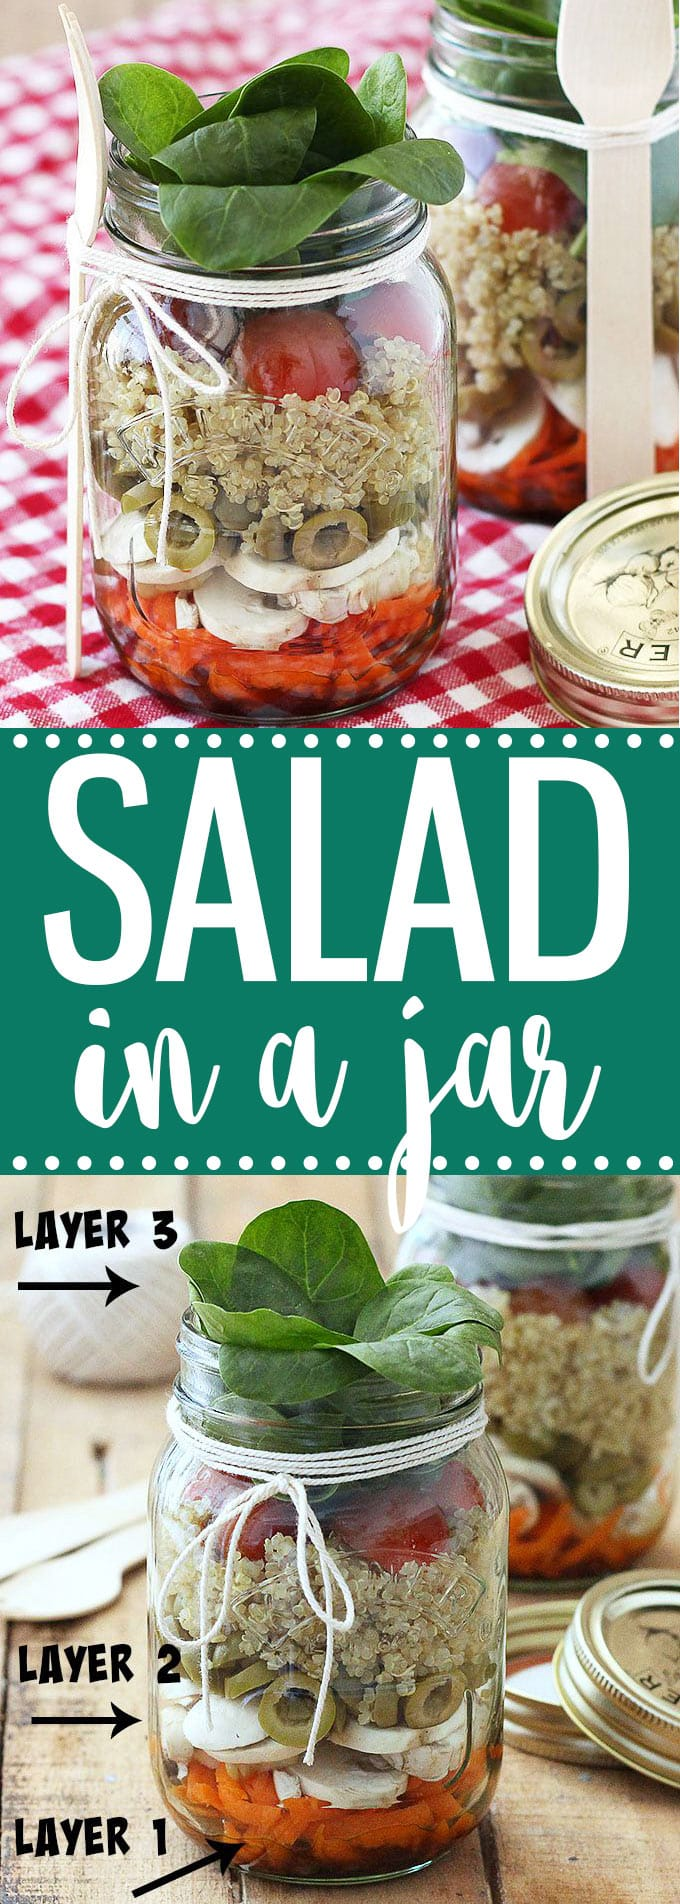 Layered salad in a jar as easy as apple pie salad in a jar recipes are the perfect option for a quick and easy make ahead forumfinder Gallery